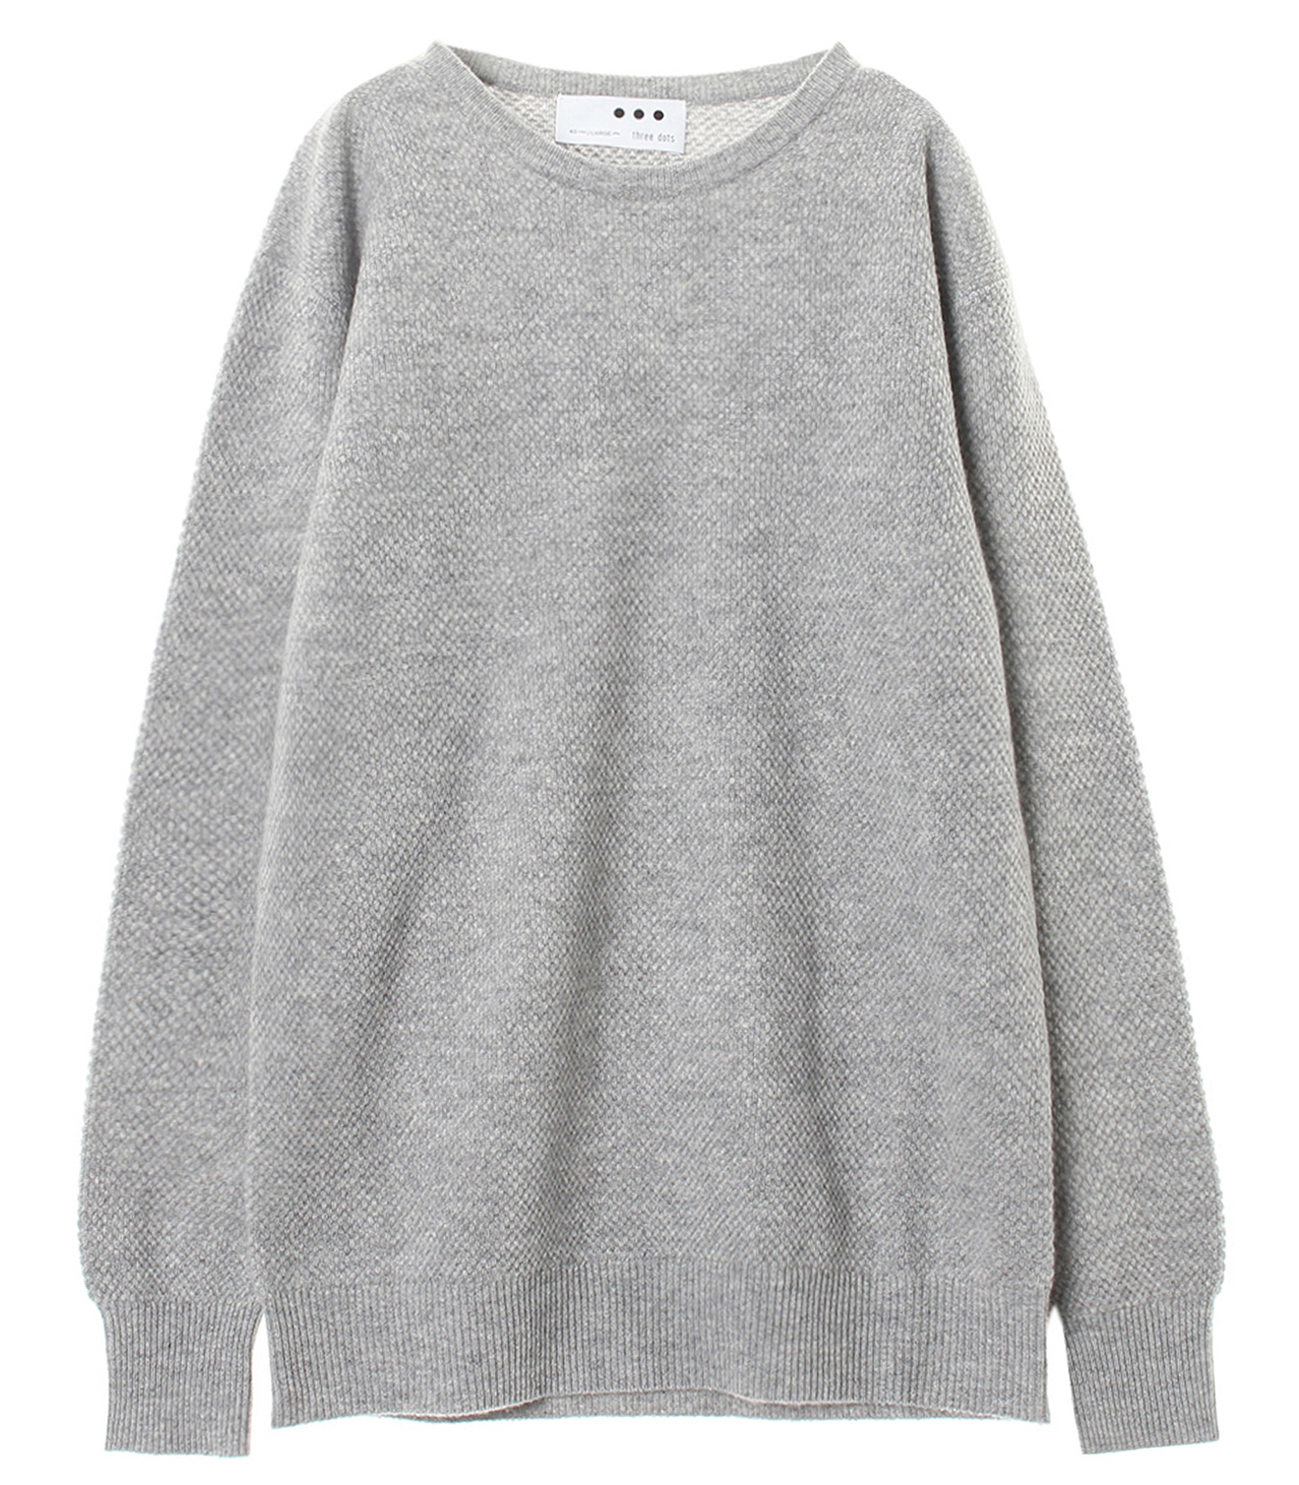 Men's pure cashmere waffle crew 詳細画像 grey 1